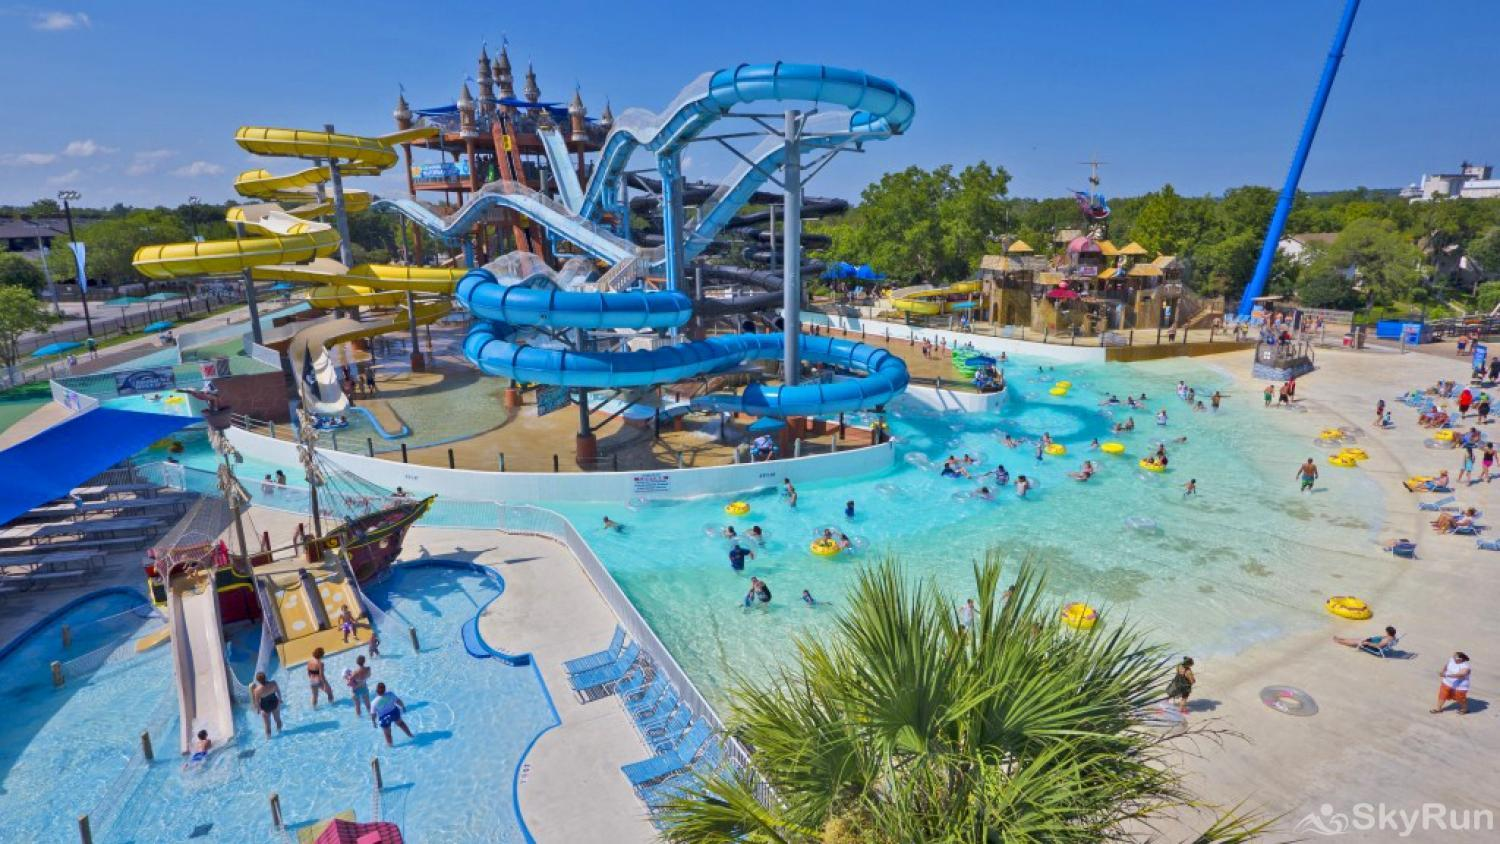 BELLA'S COVE Schlitterbahn Waterpark in nearby New Braunfels